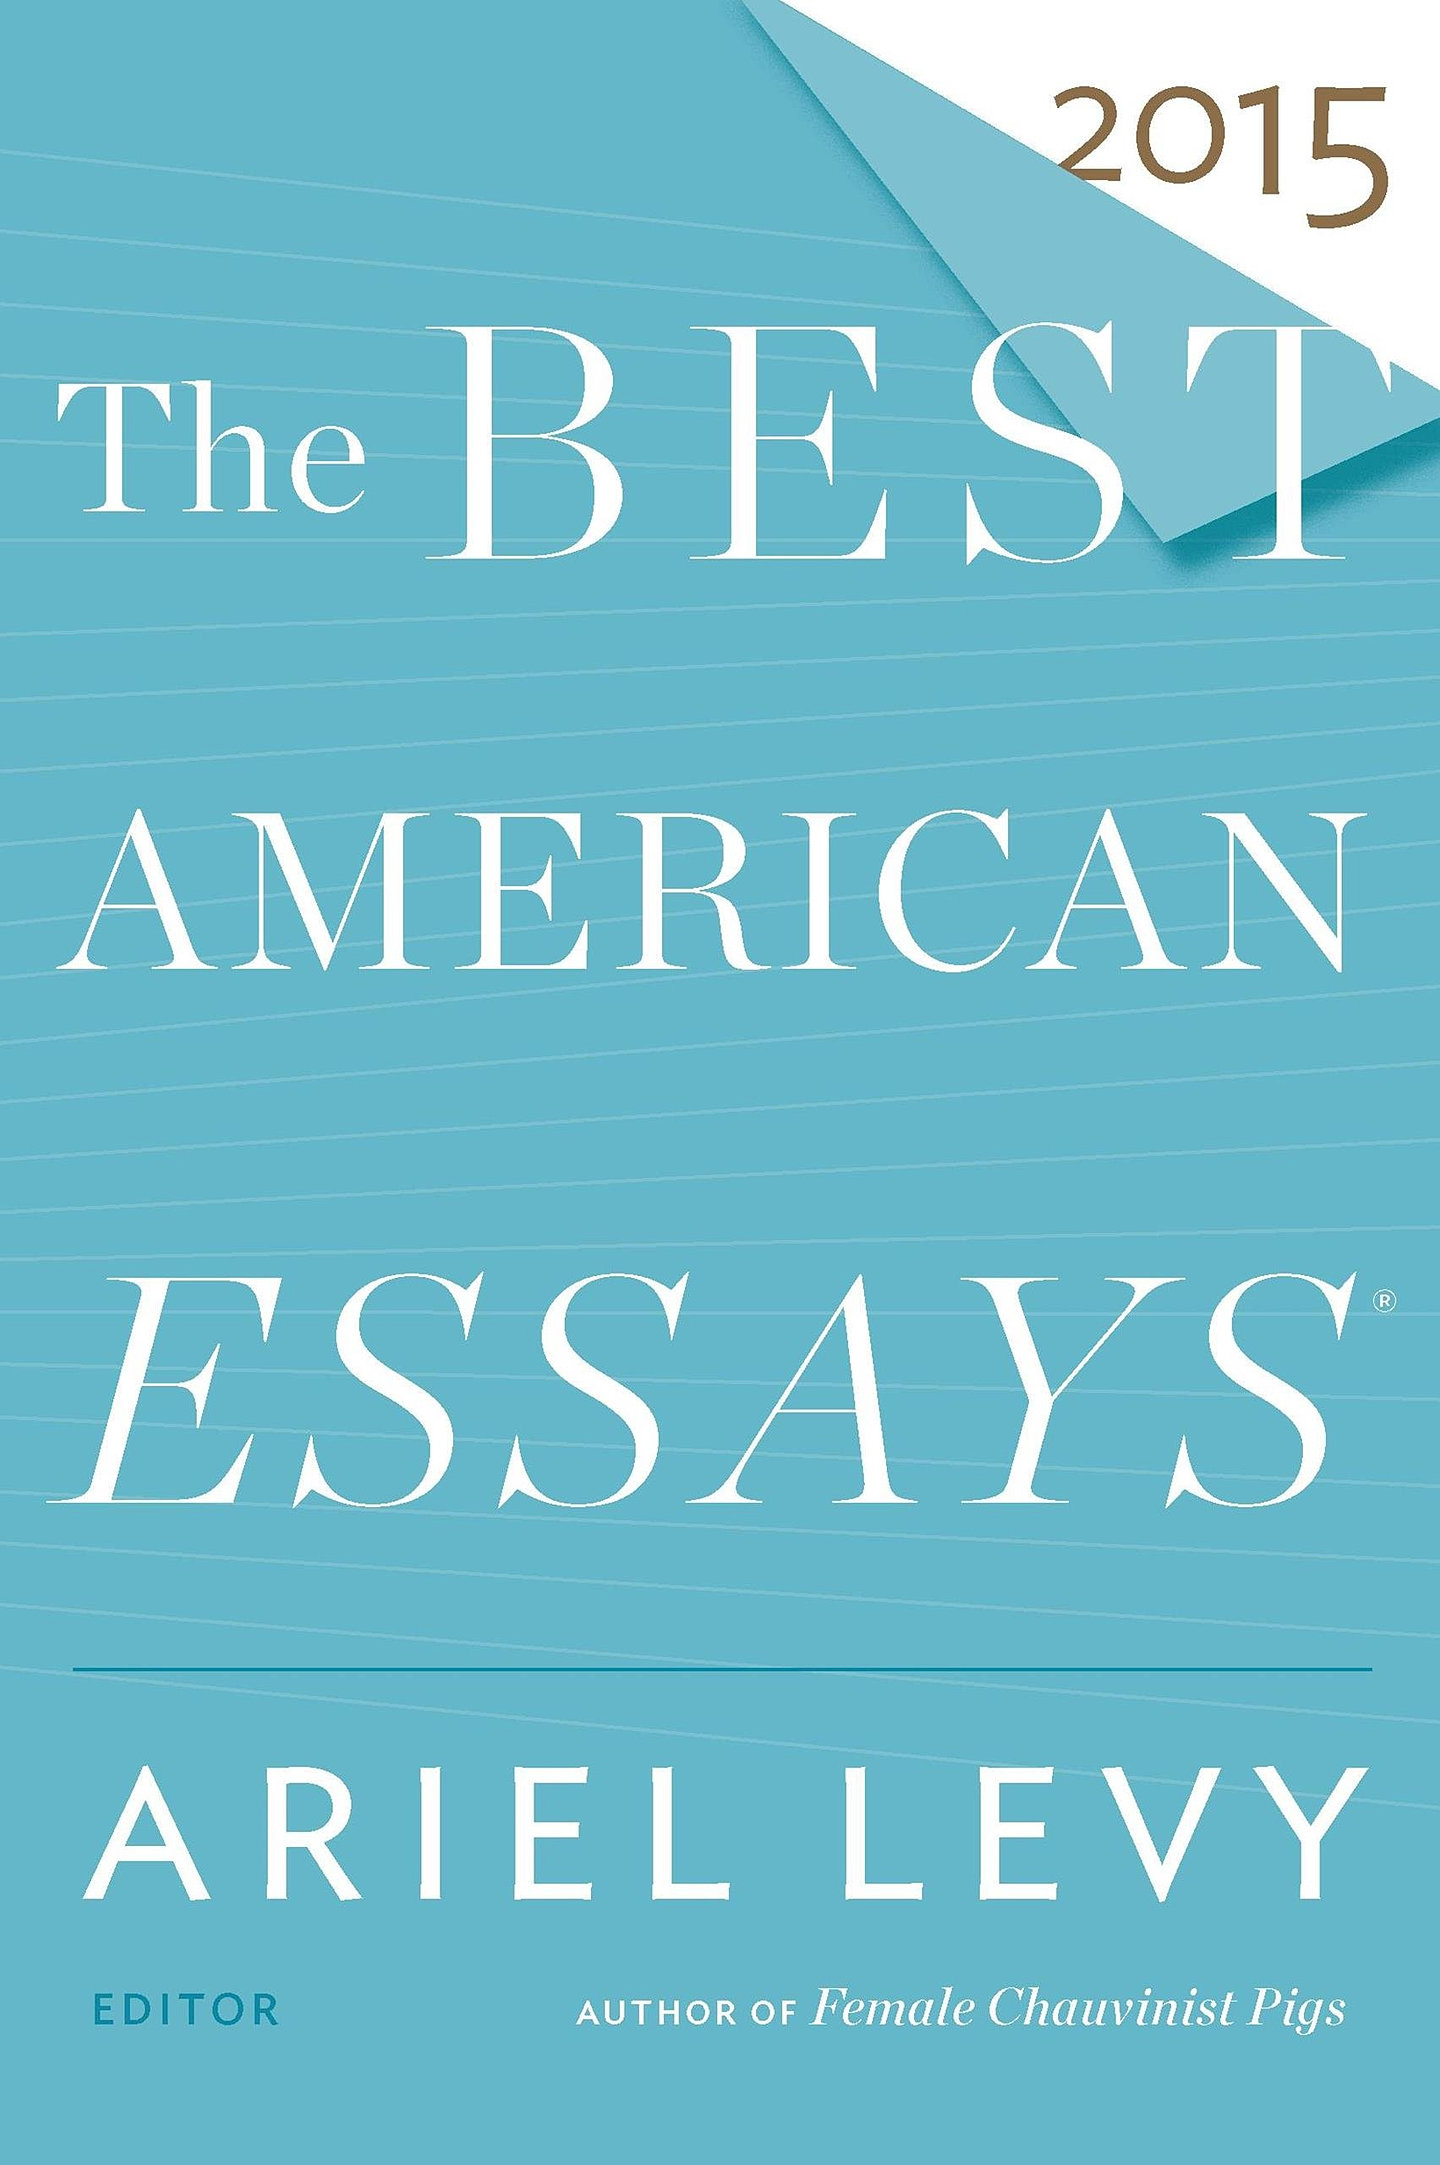 amy butcher essayist essays reenacting distinguished as notable essay in best american essays 2015